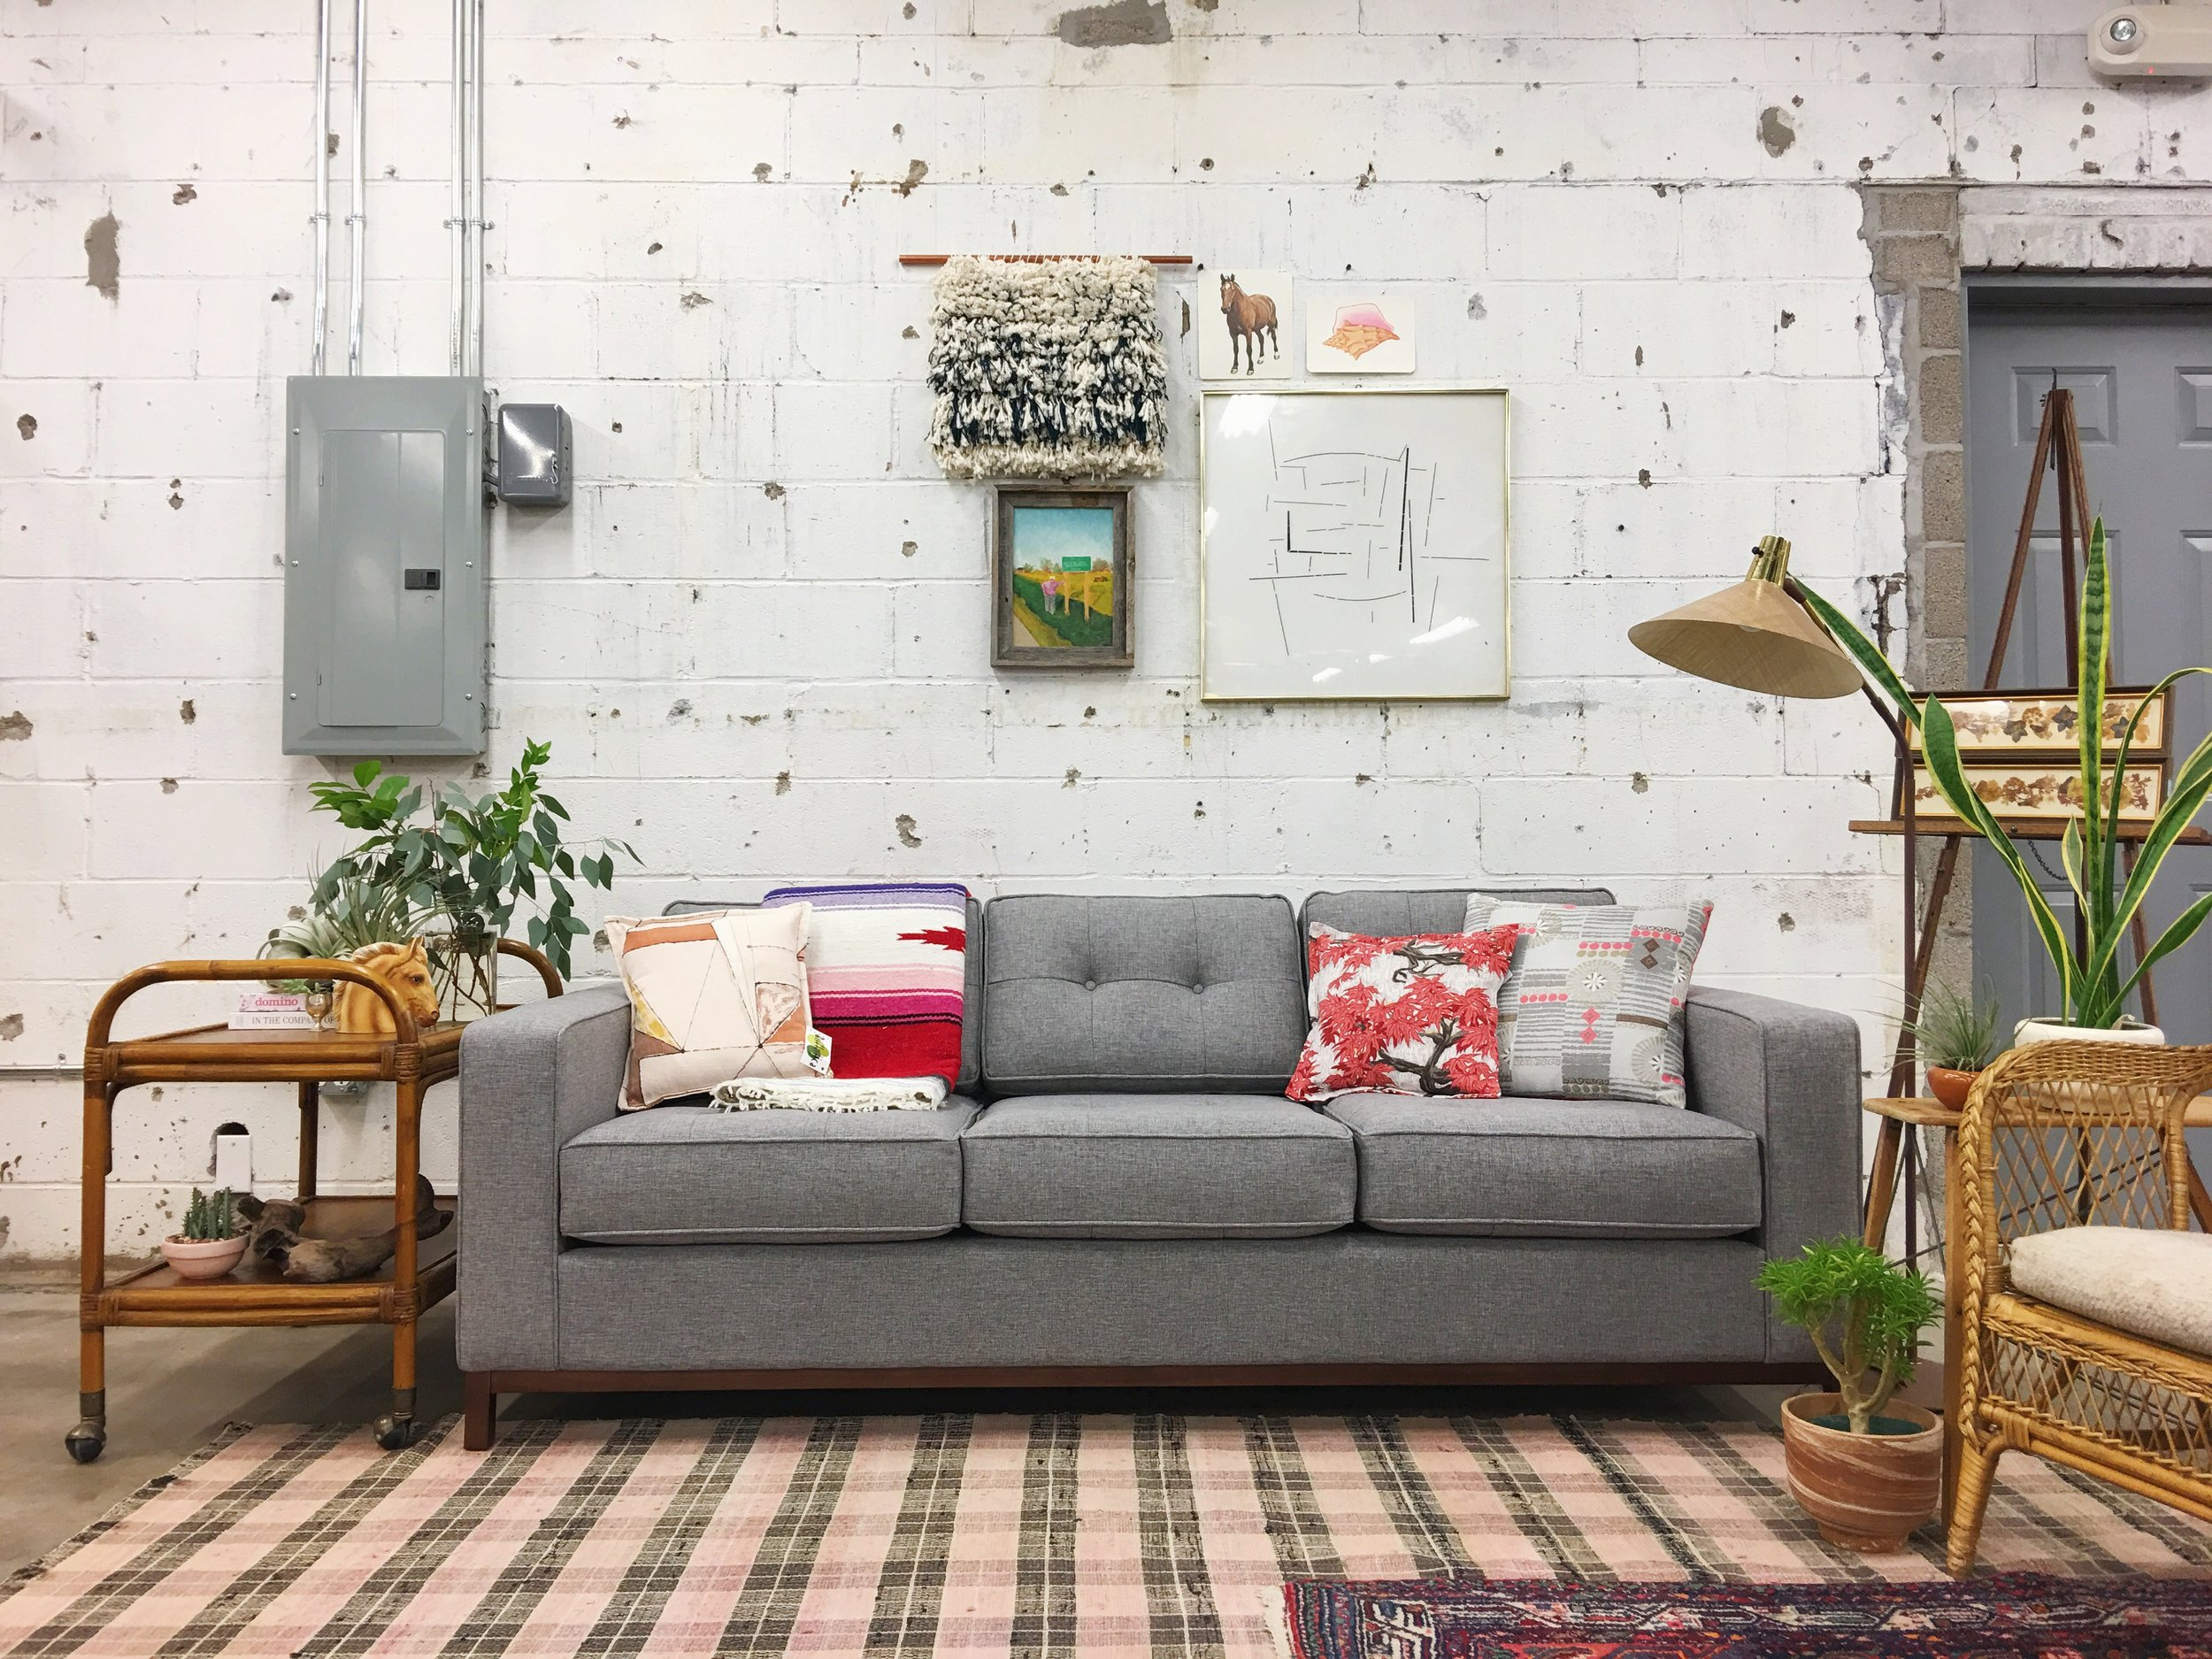 The colorful, playful bohemian elements (wicker, rattan, wall weavings) contrast nicely with the modern  Gus* Jane sofa .